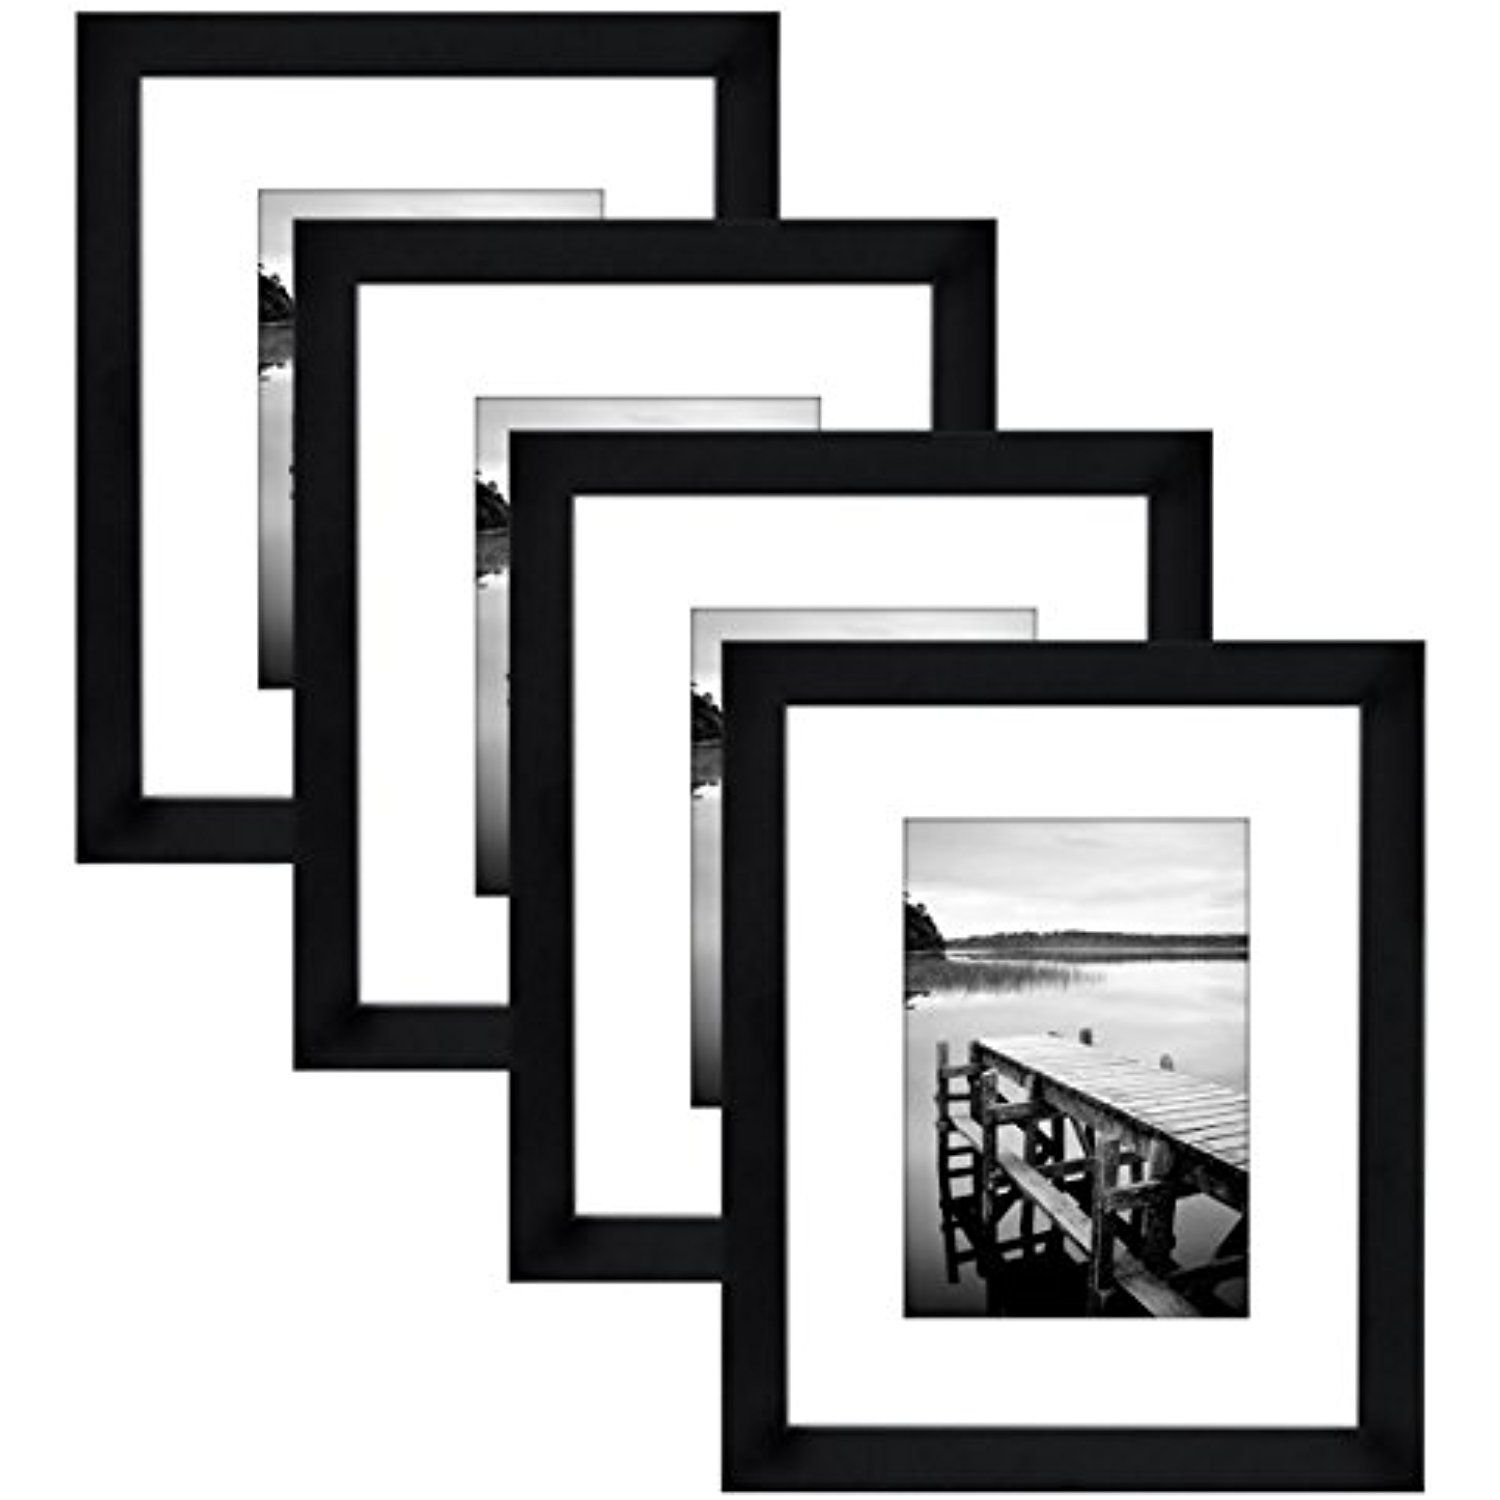 4-Pack, 8x10 Black Picture Frames - Made to Display Pictures 5x7 ...